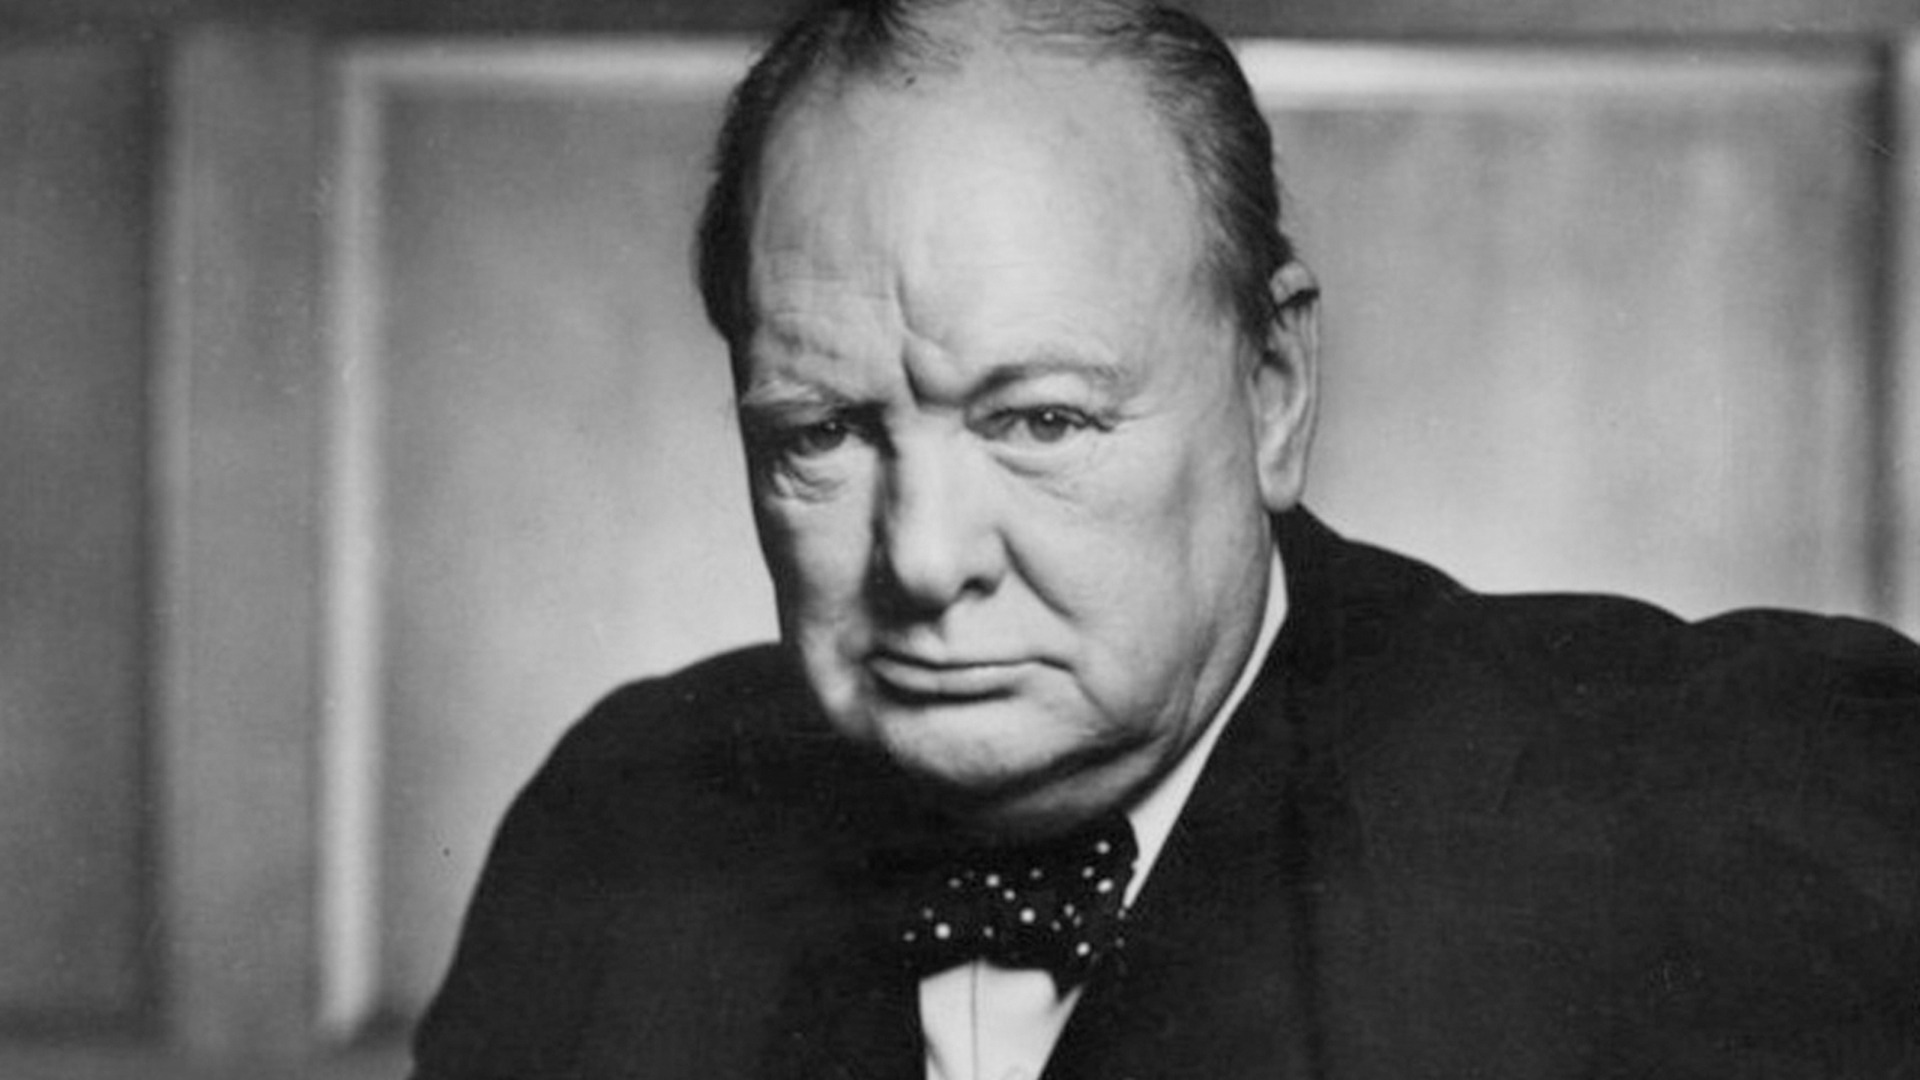 essay on winston churchill Essay winston churchill sir winston leonard spencer churchill was born at blenheim palace on nov 30, 1874 his father was lord randolph churchill, who.